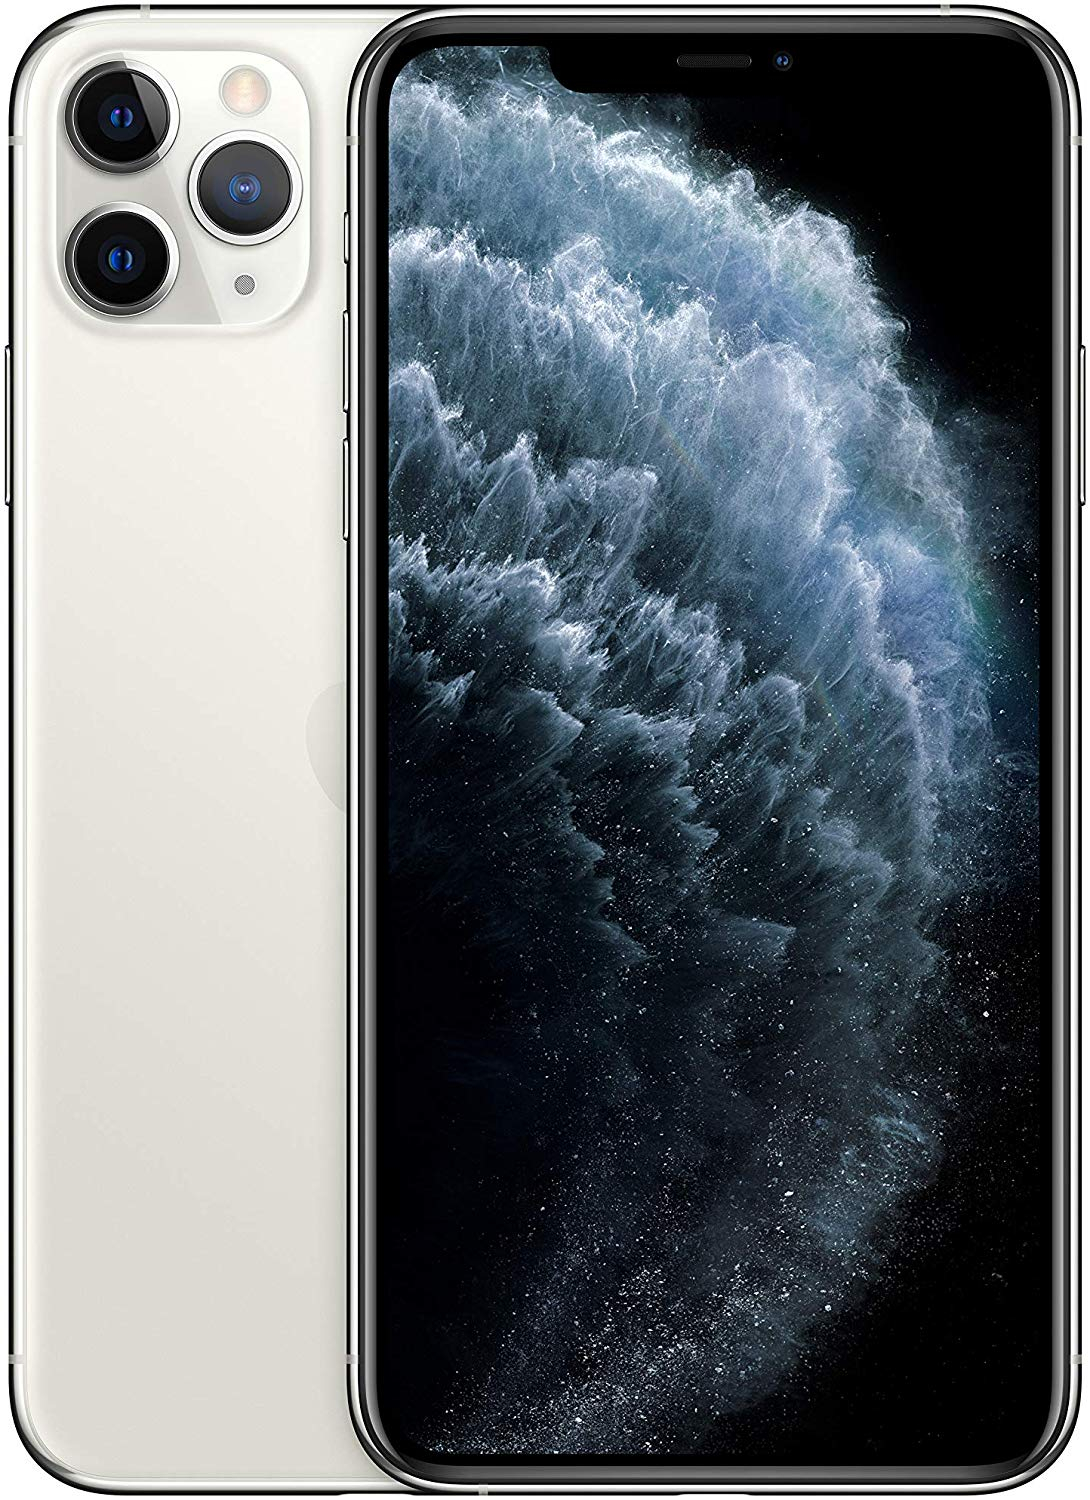 Phone Apple IPhone 11 Pro Max, Silver Color (Silver), 4 GB RAM, 512 GB ROM, OLED Display Super Retina XDR 6